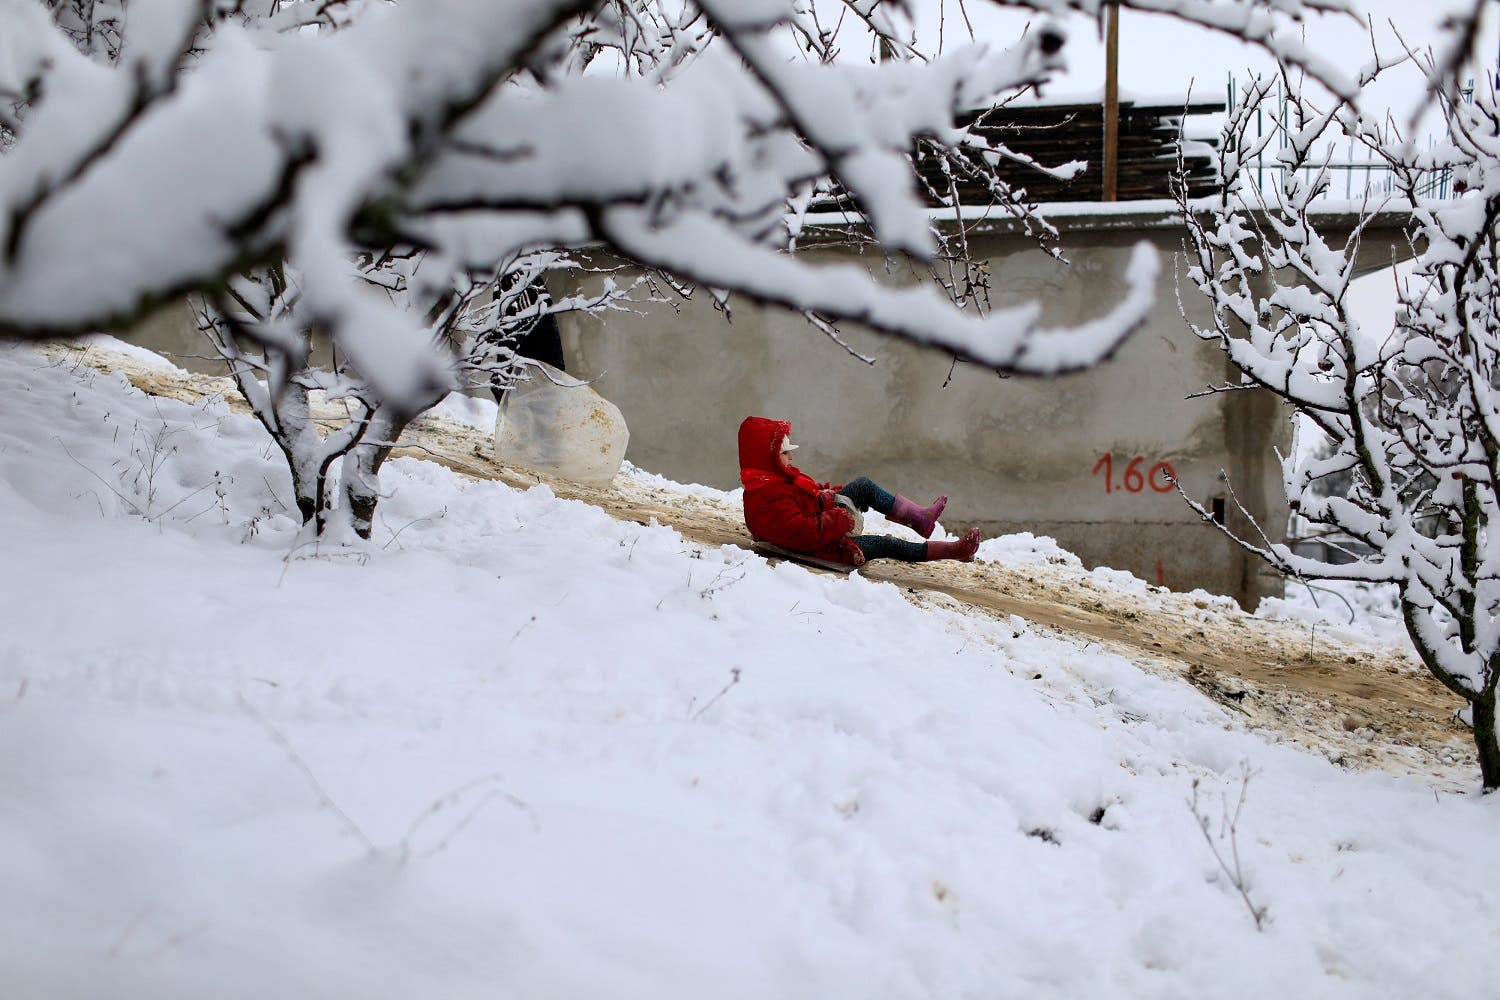 A girl uses a plastic sack to slide down a snow-covered slope after a snowfall on the outskirts of Medea. (Reuters)